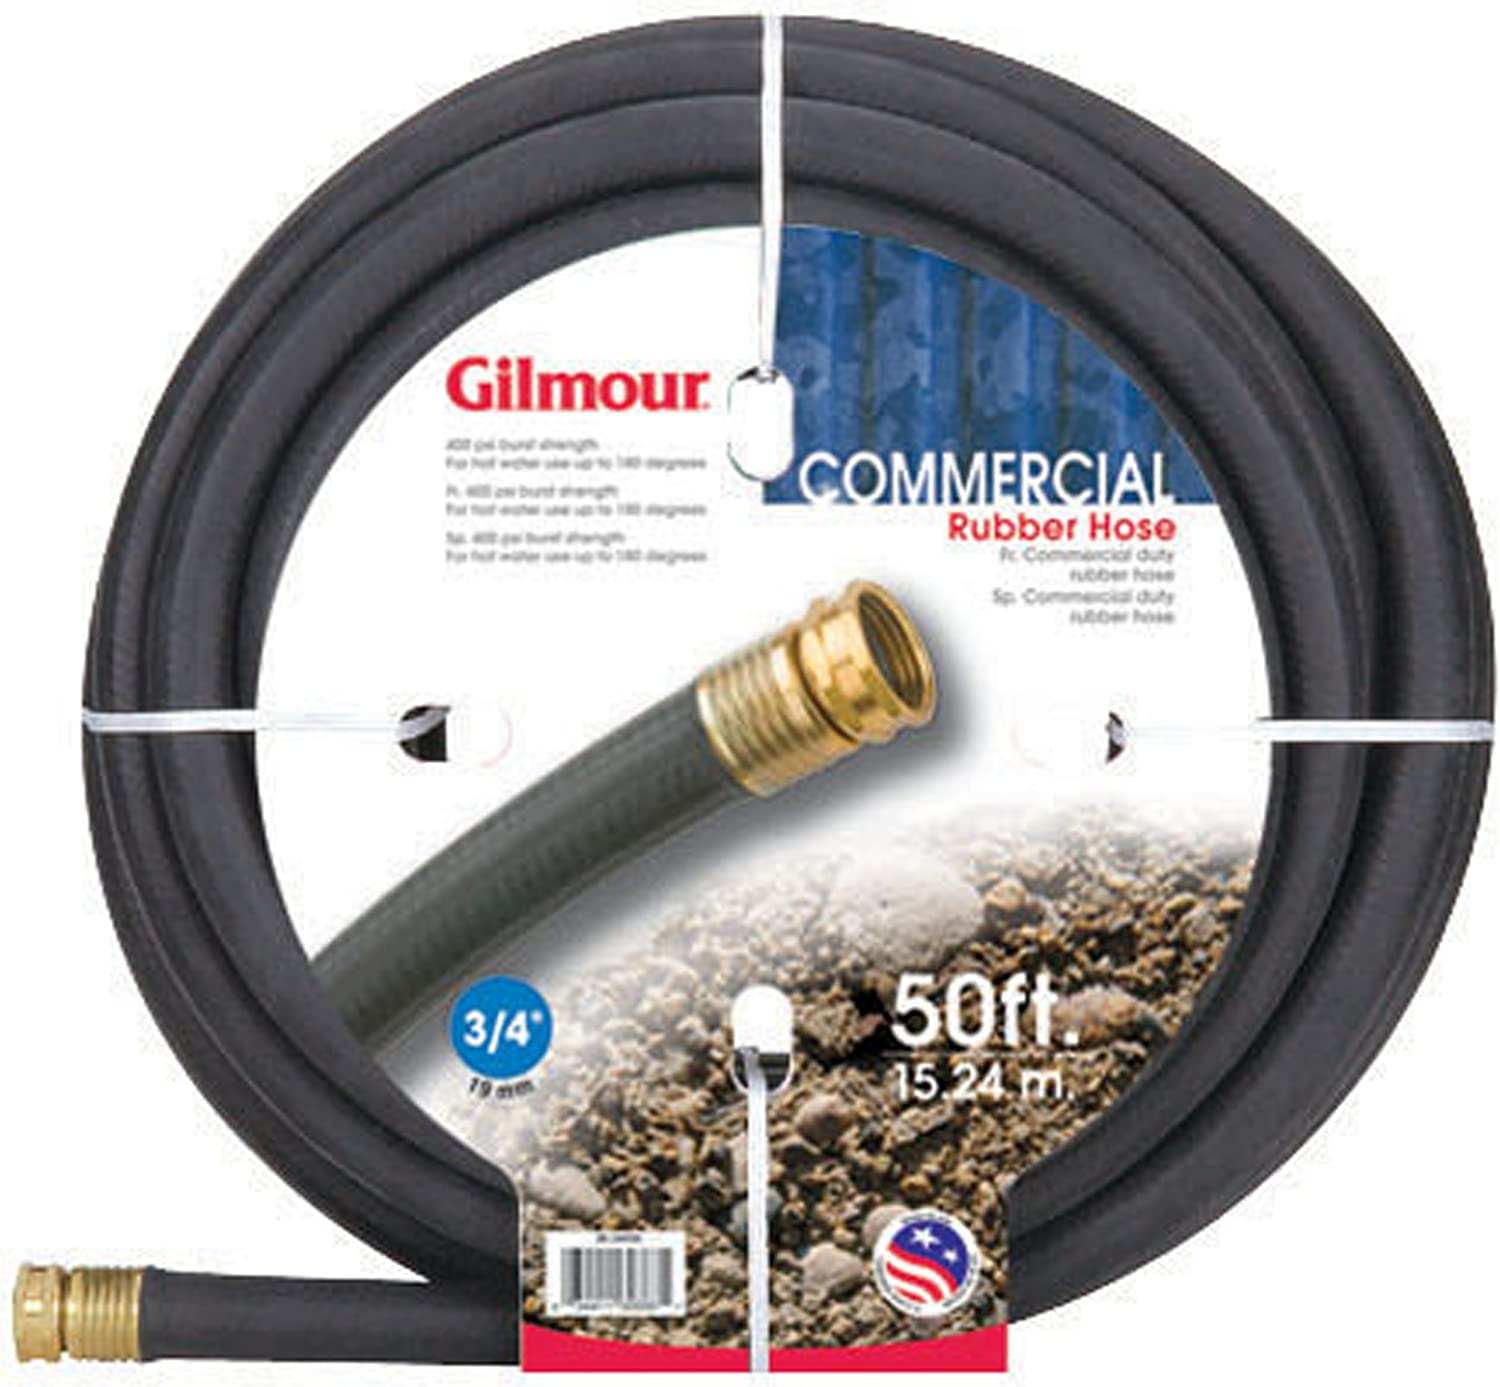 Gilmour 38 Series Reinforced Rubber Commercial Hose 3/4 Inch x 50 Feet38-34050 Black